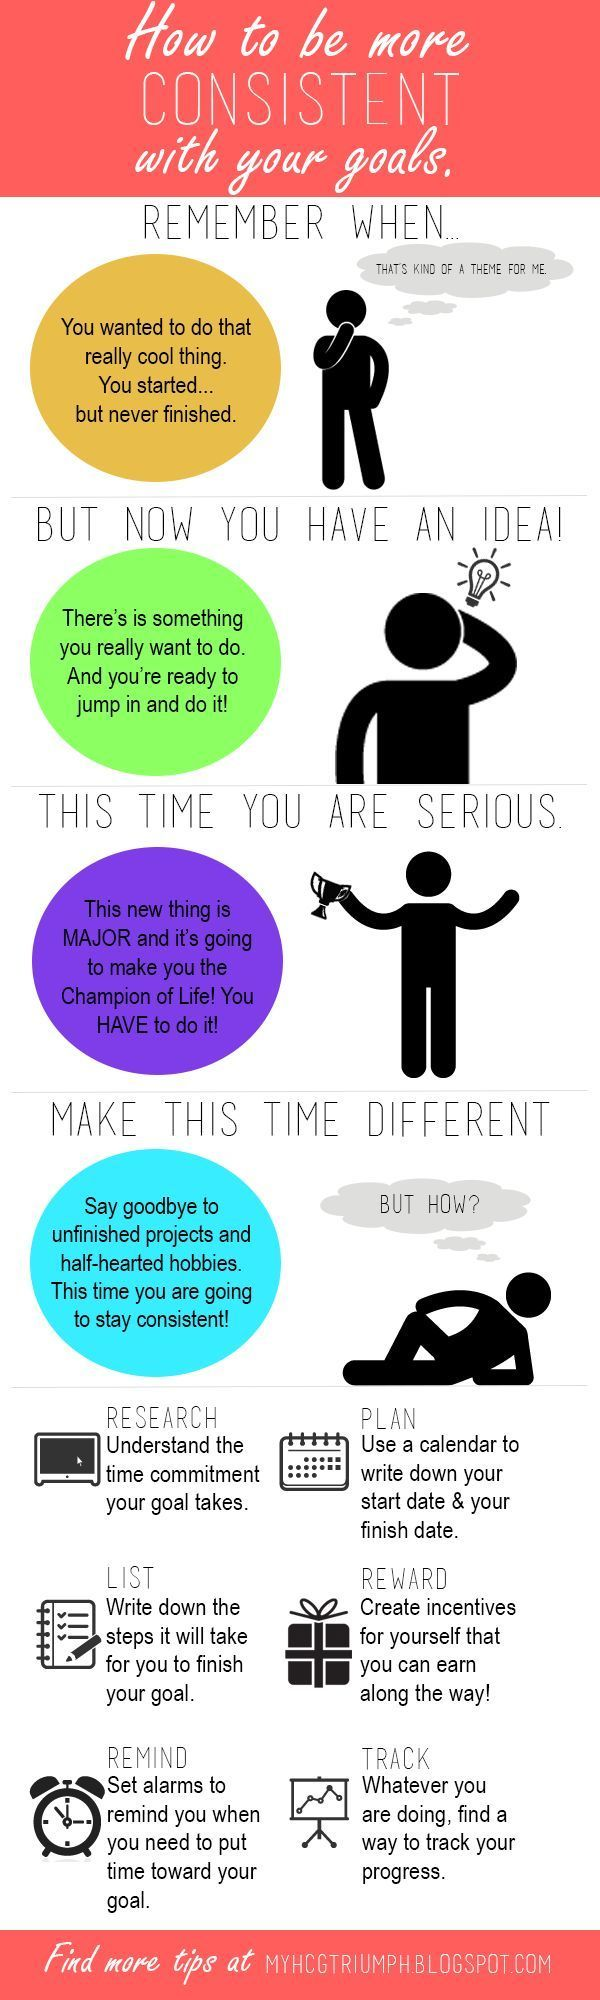 1 When Was The Last Time You Had A Great Idea That You Didn T Bring To Fruition 2 What Are Three Management Infographic Motivation Self Development